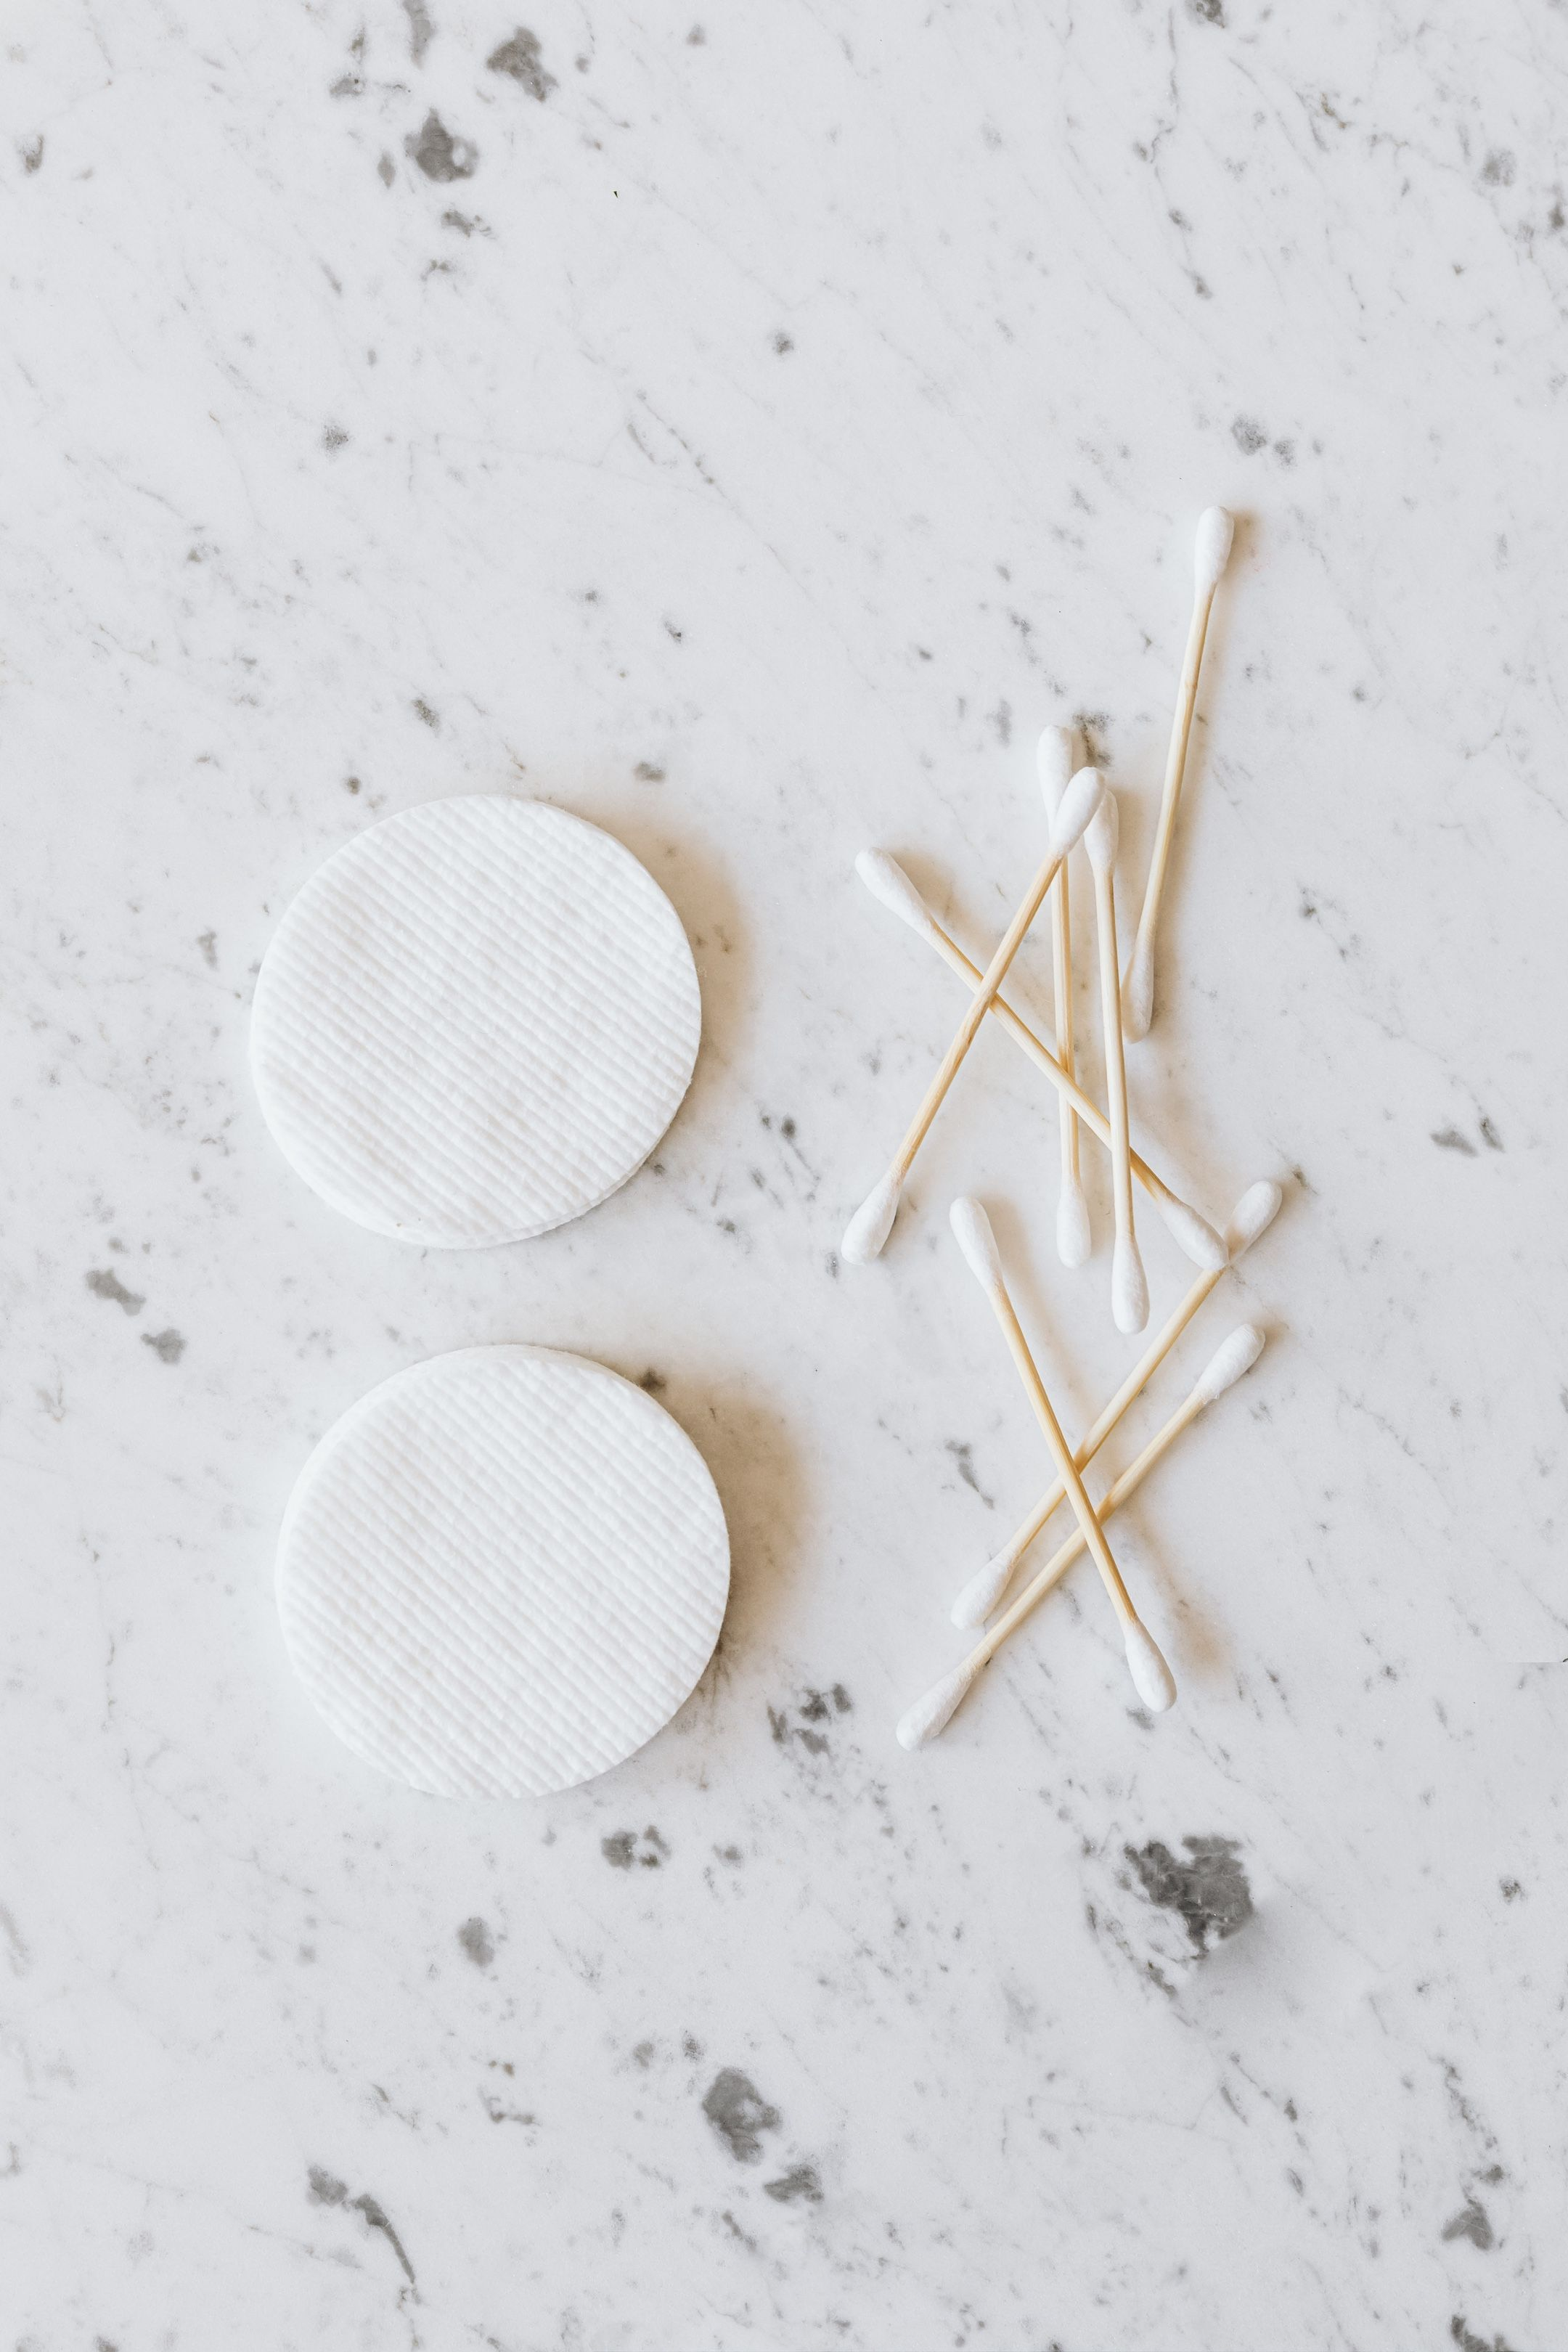 Cotton rounds and q-tips